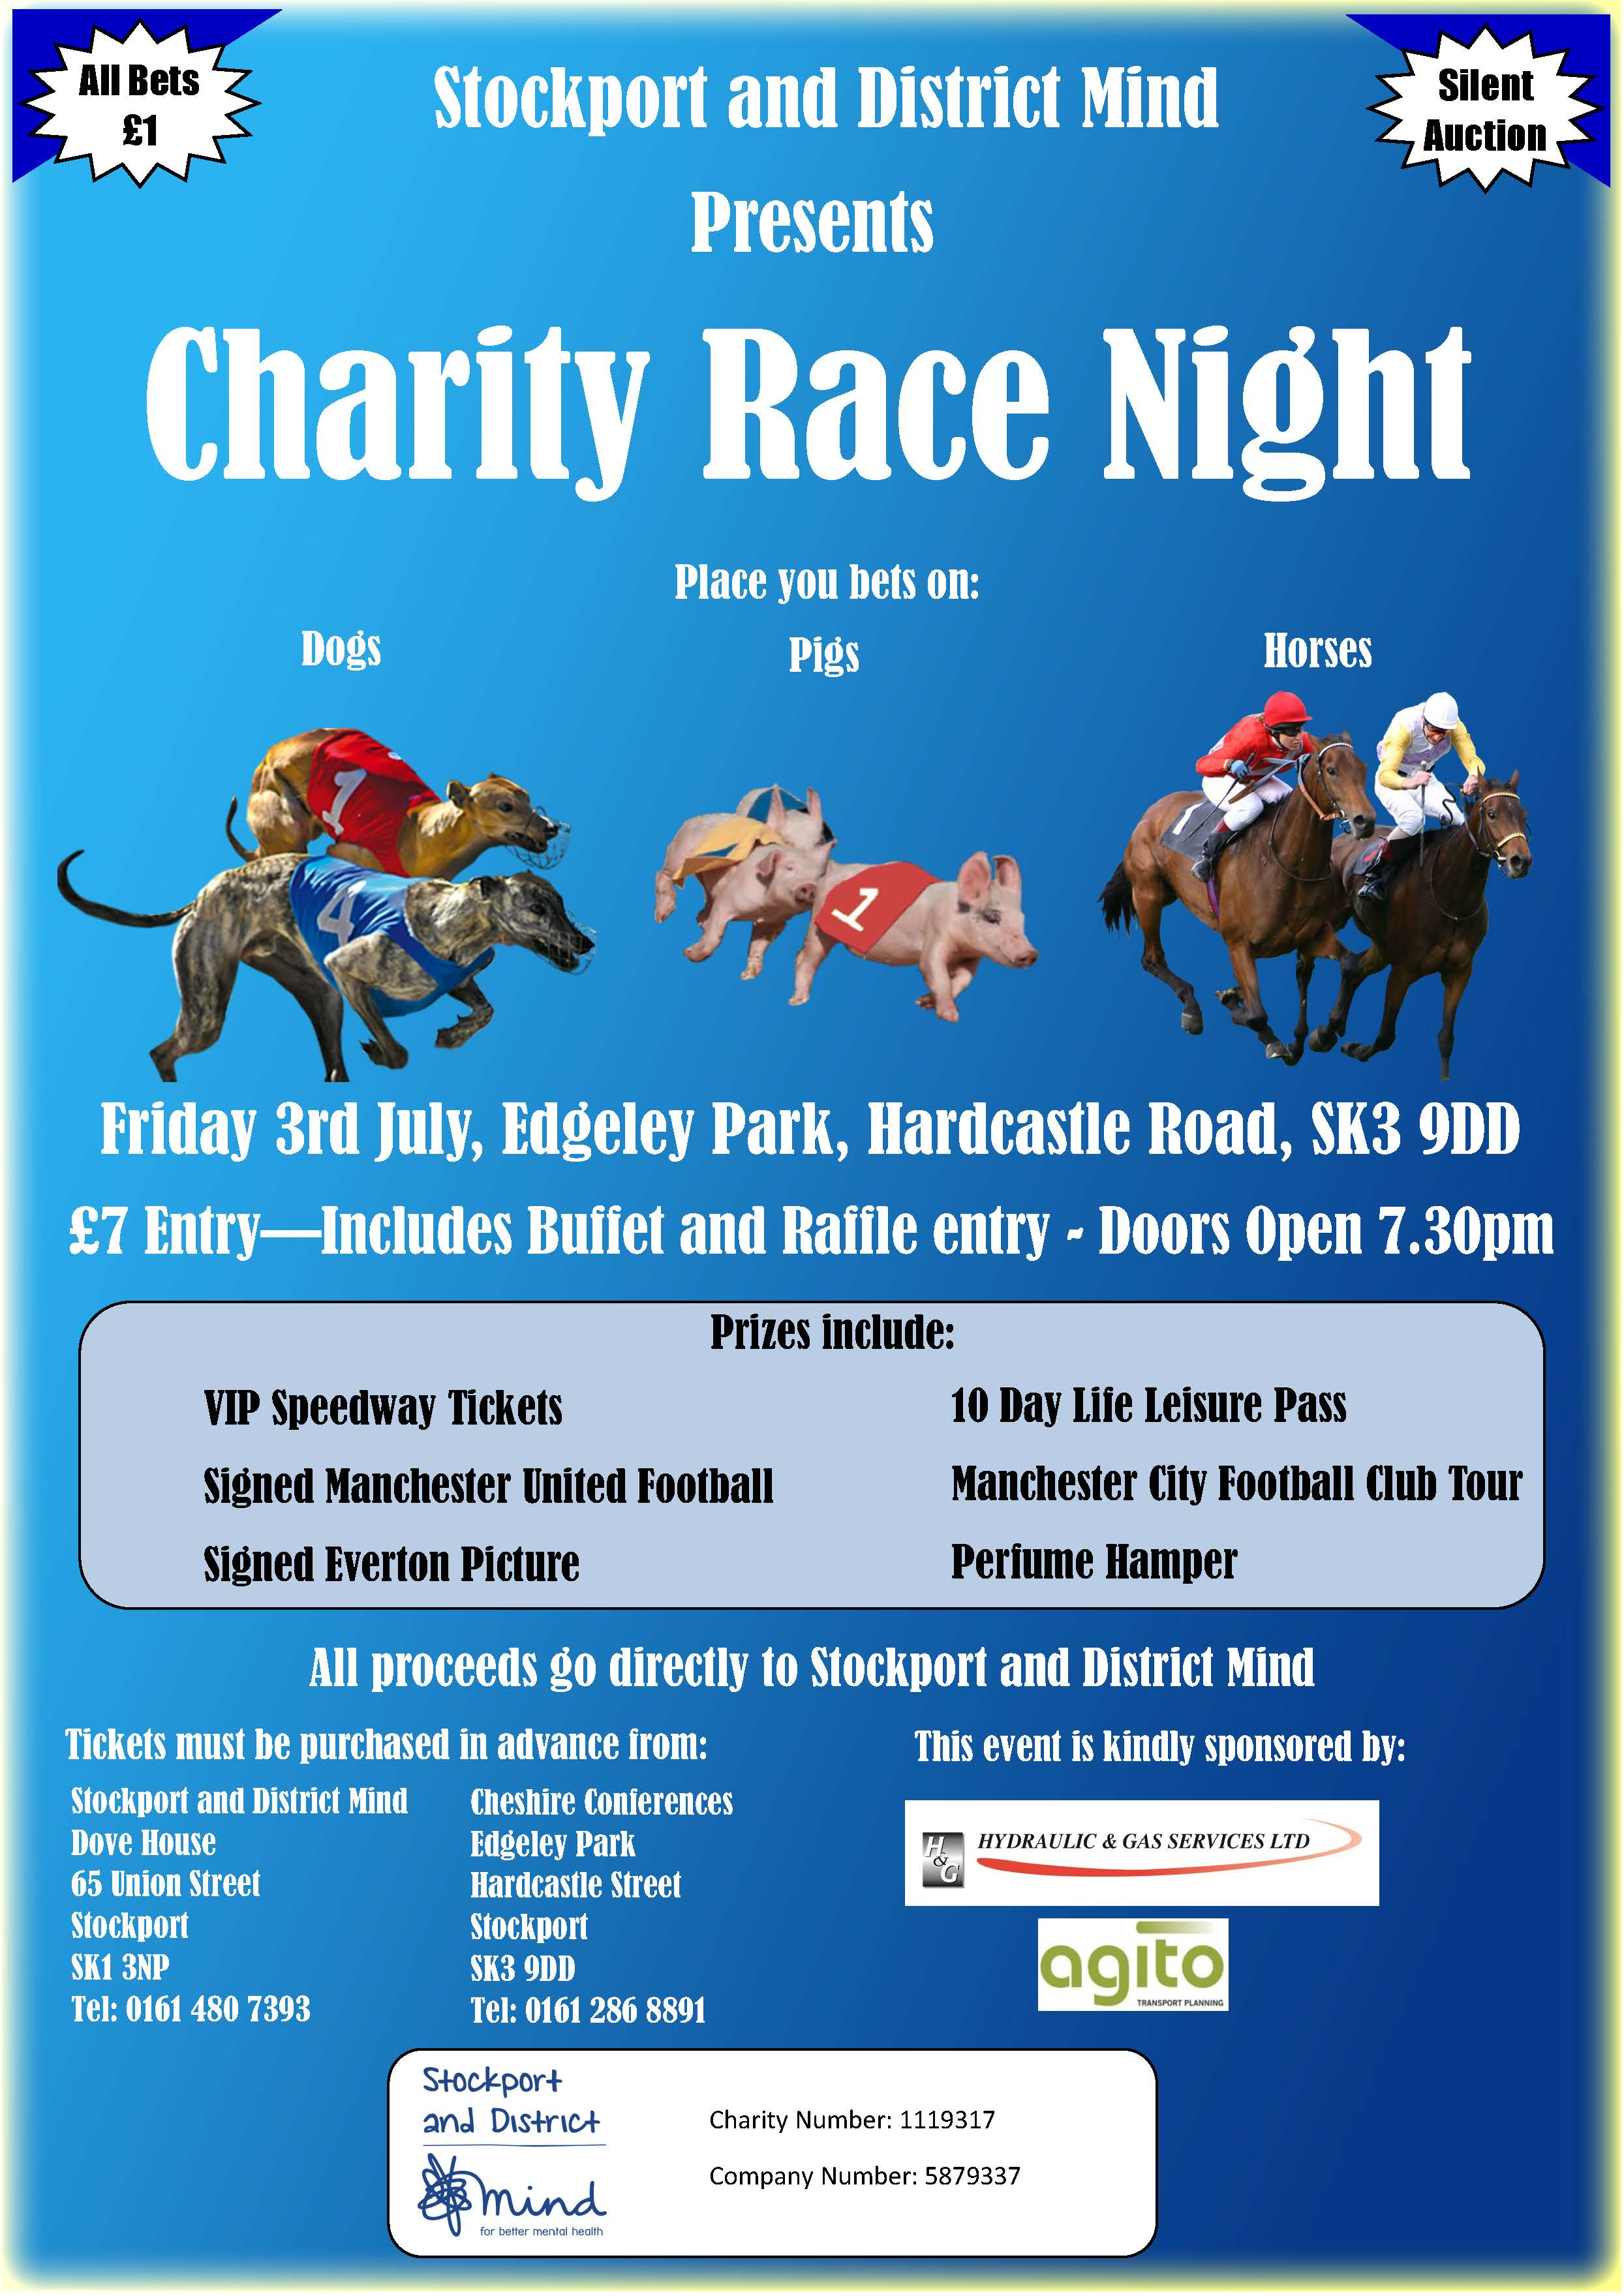 Stockport & District Mind - Charity Race Night - Stockport